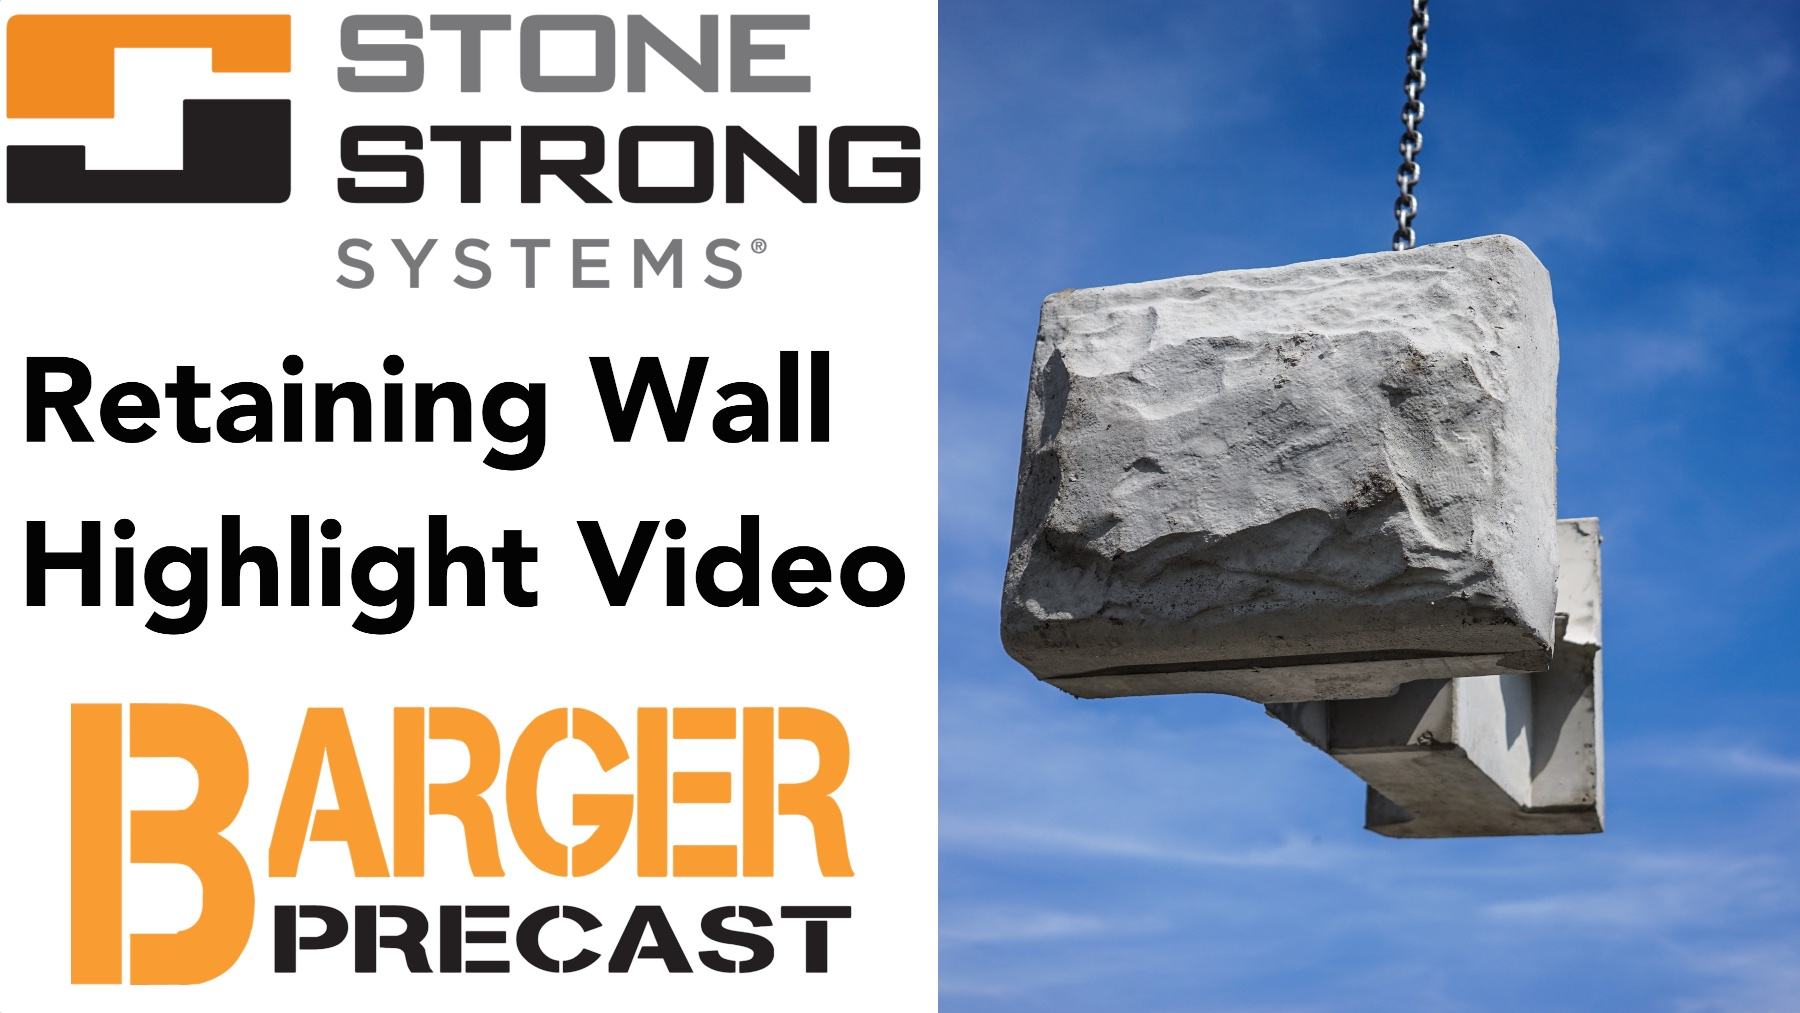 Stone Strong Retaining Wall Highlight Video